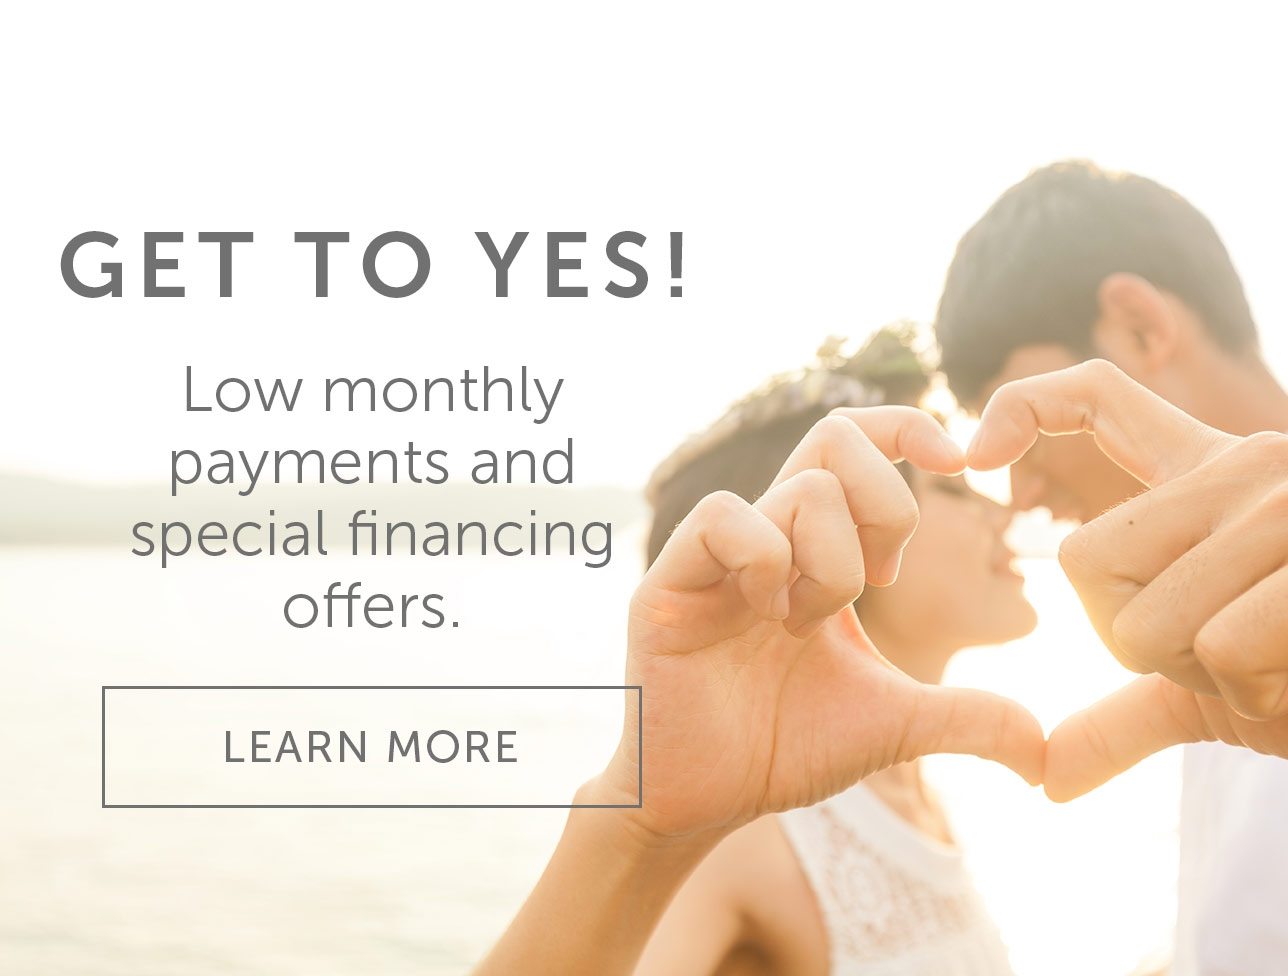 Low monthly payments and special financing offers.